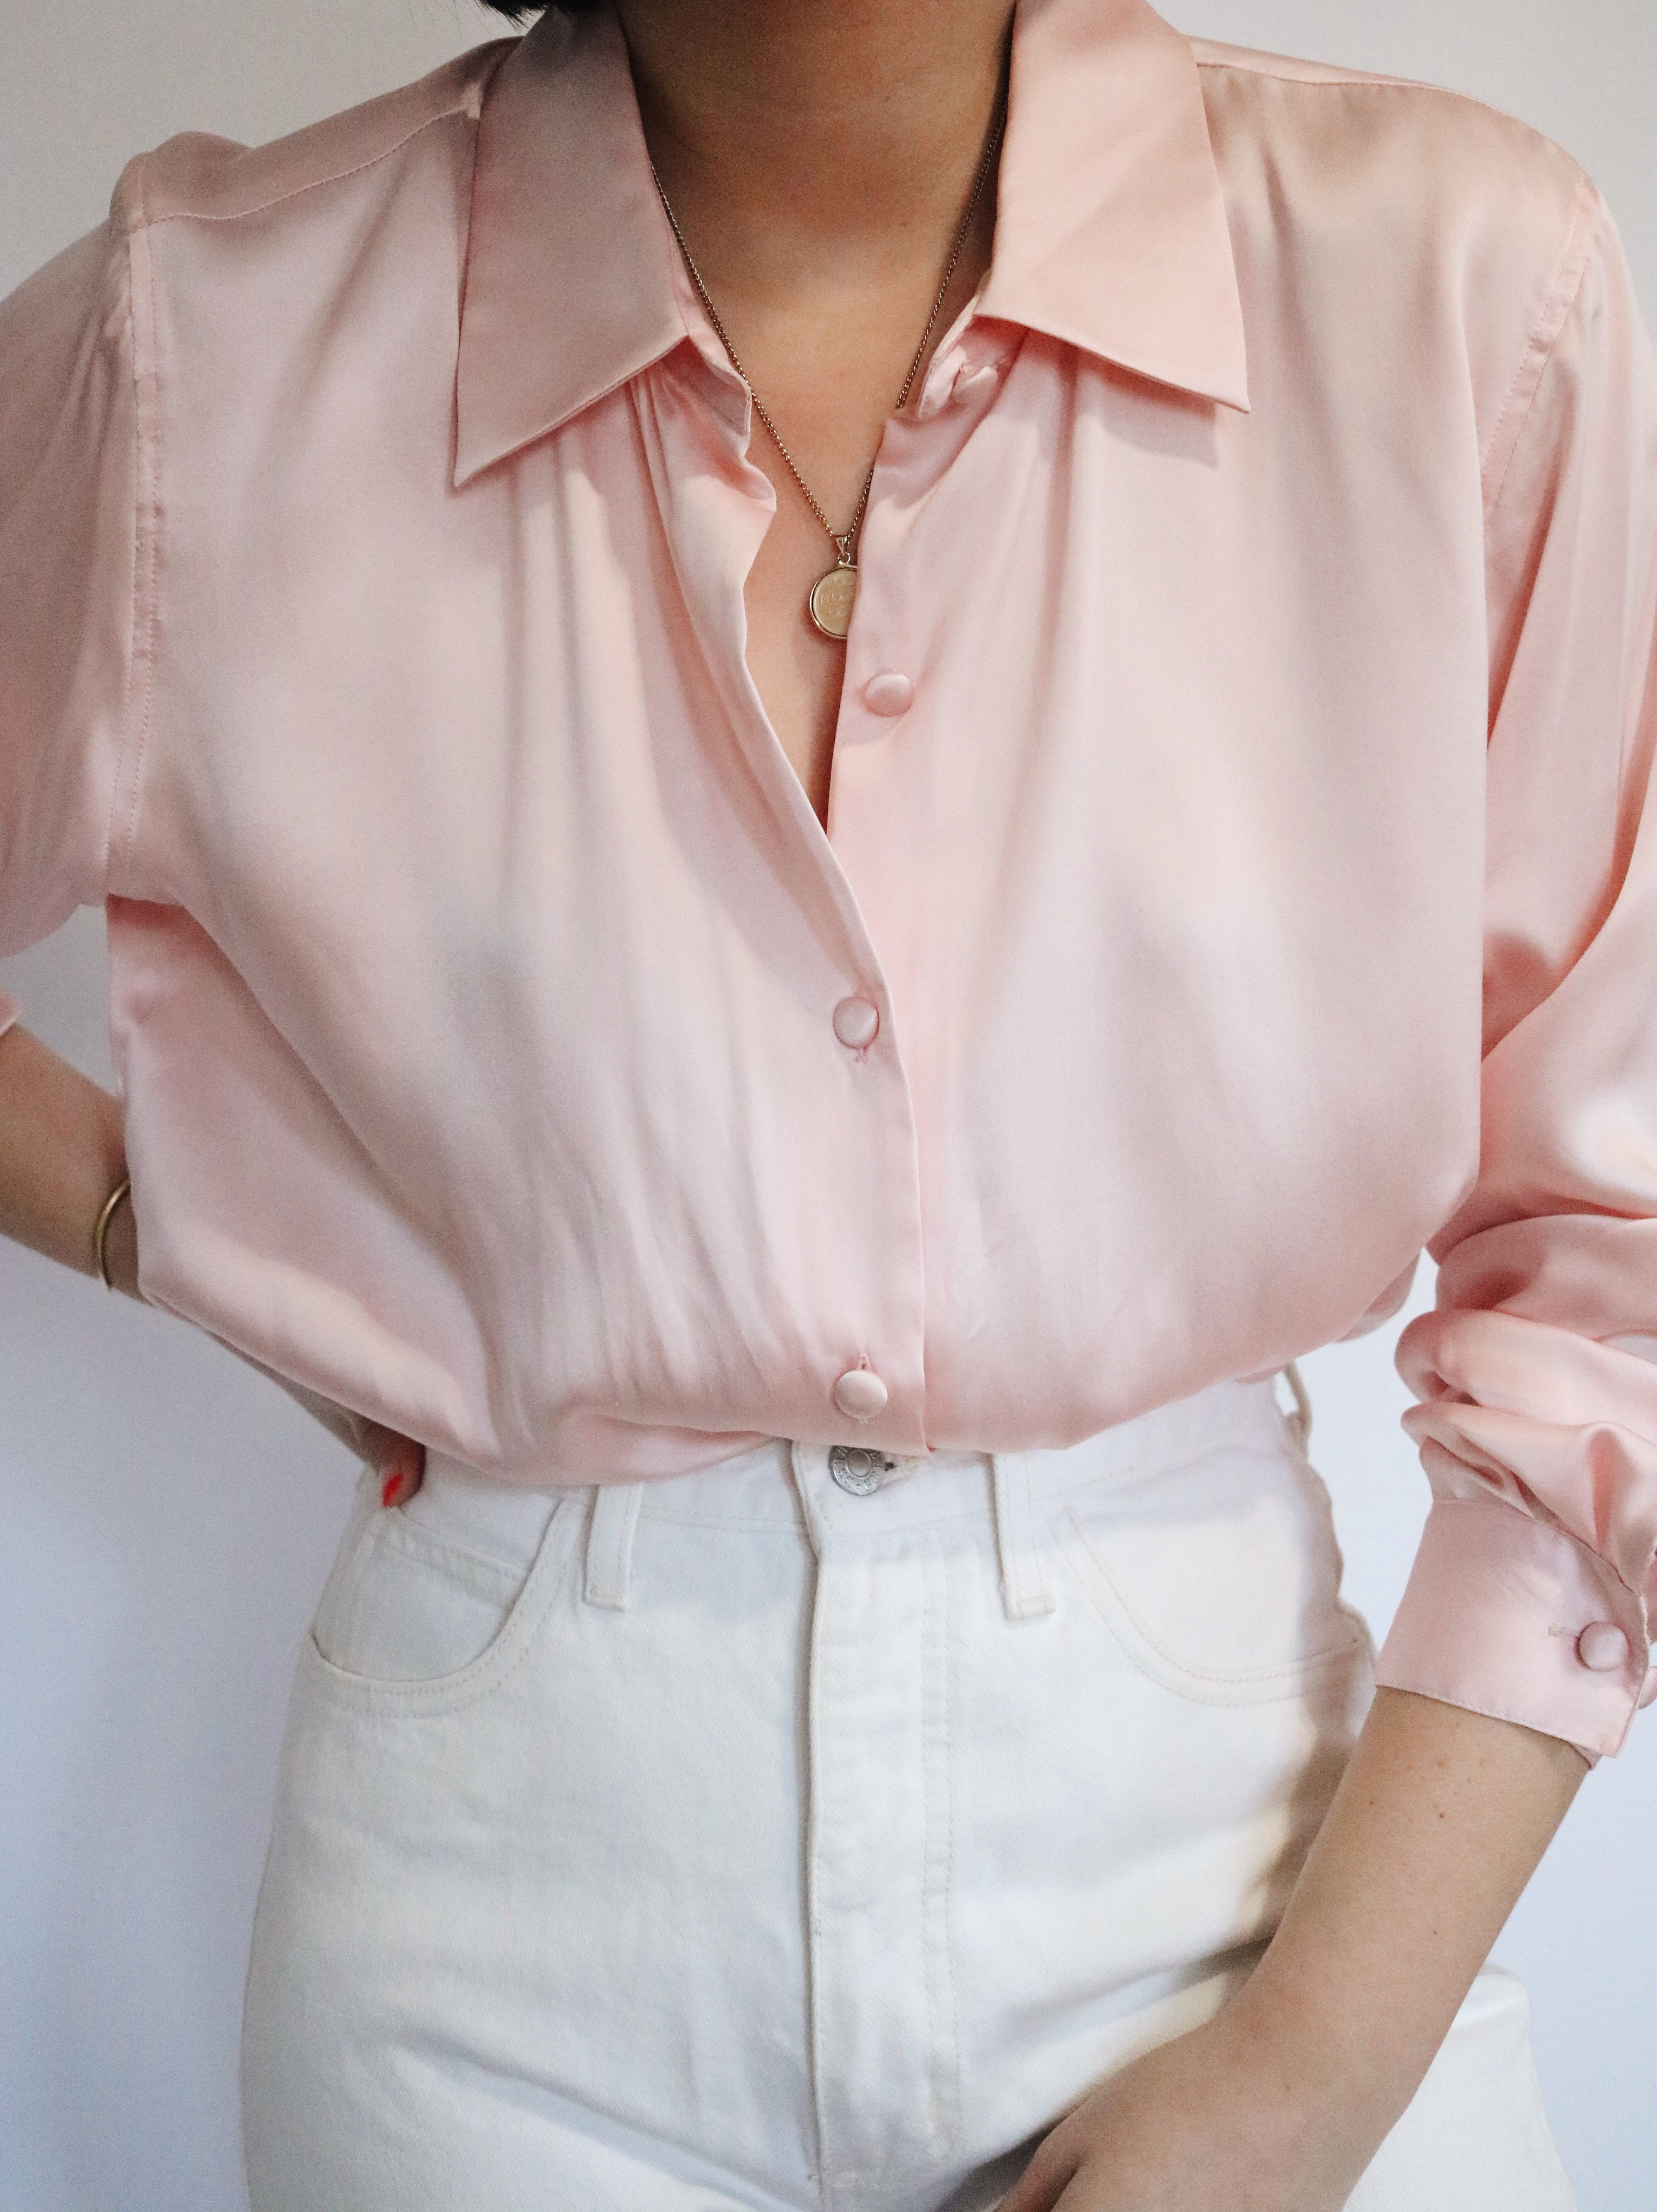 Vintage Pure Silk Pink Blouse Ladylvintageco Pink Blouses Outfit Silk Pink Blouse Classic Style Outfits